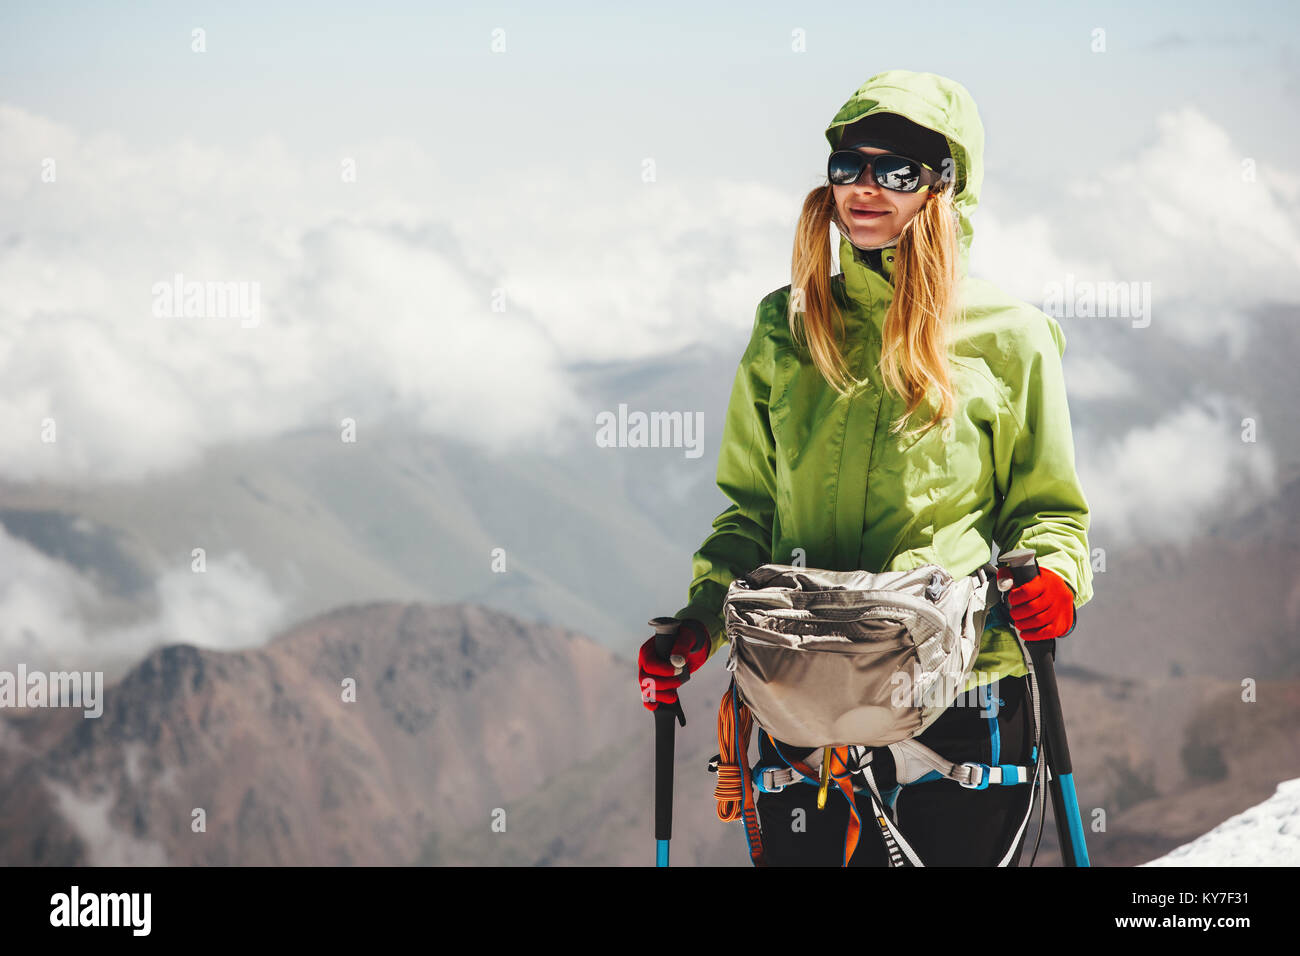 Woman climbing sur la montagne de style de voyage Vacances aventure concept active outdoor sport alpinisme émotions Photo Stock